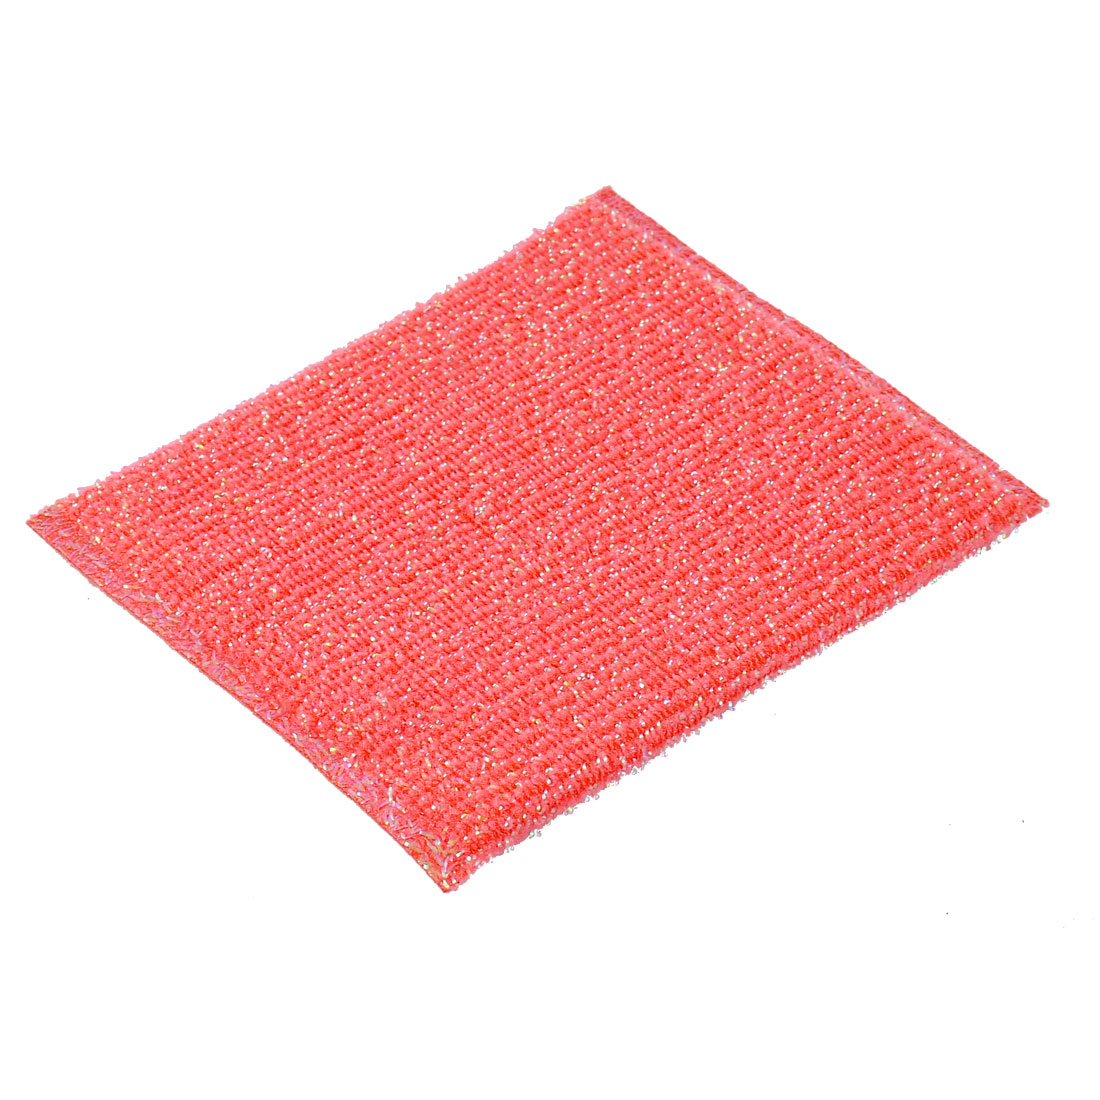 Kitchenware Tableware Bowl Plate Duster Cleaning Dish Scrub Sponge Cloth Red